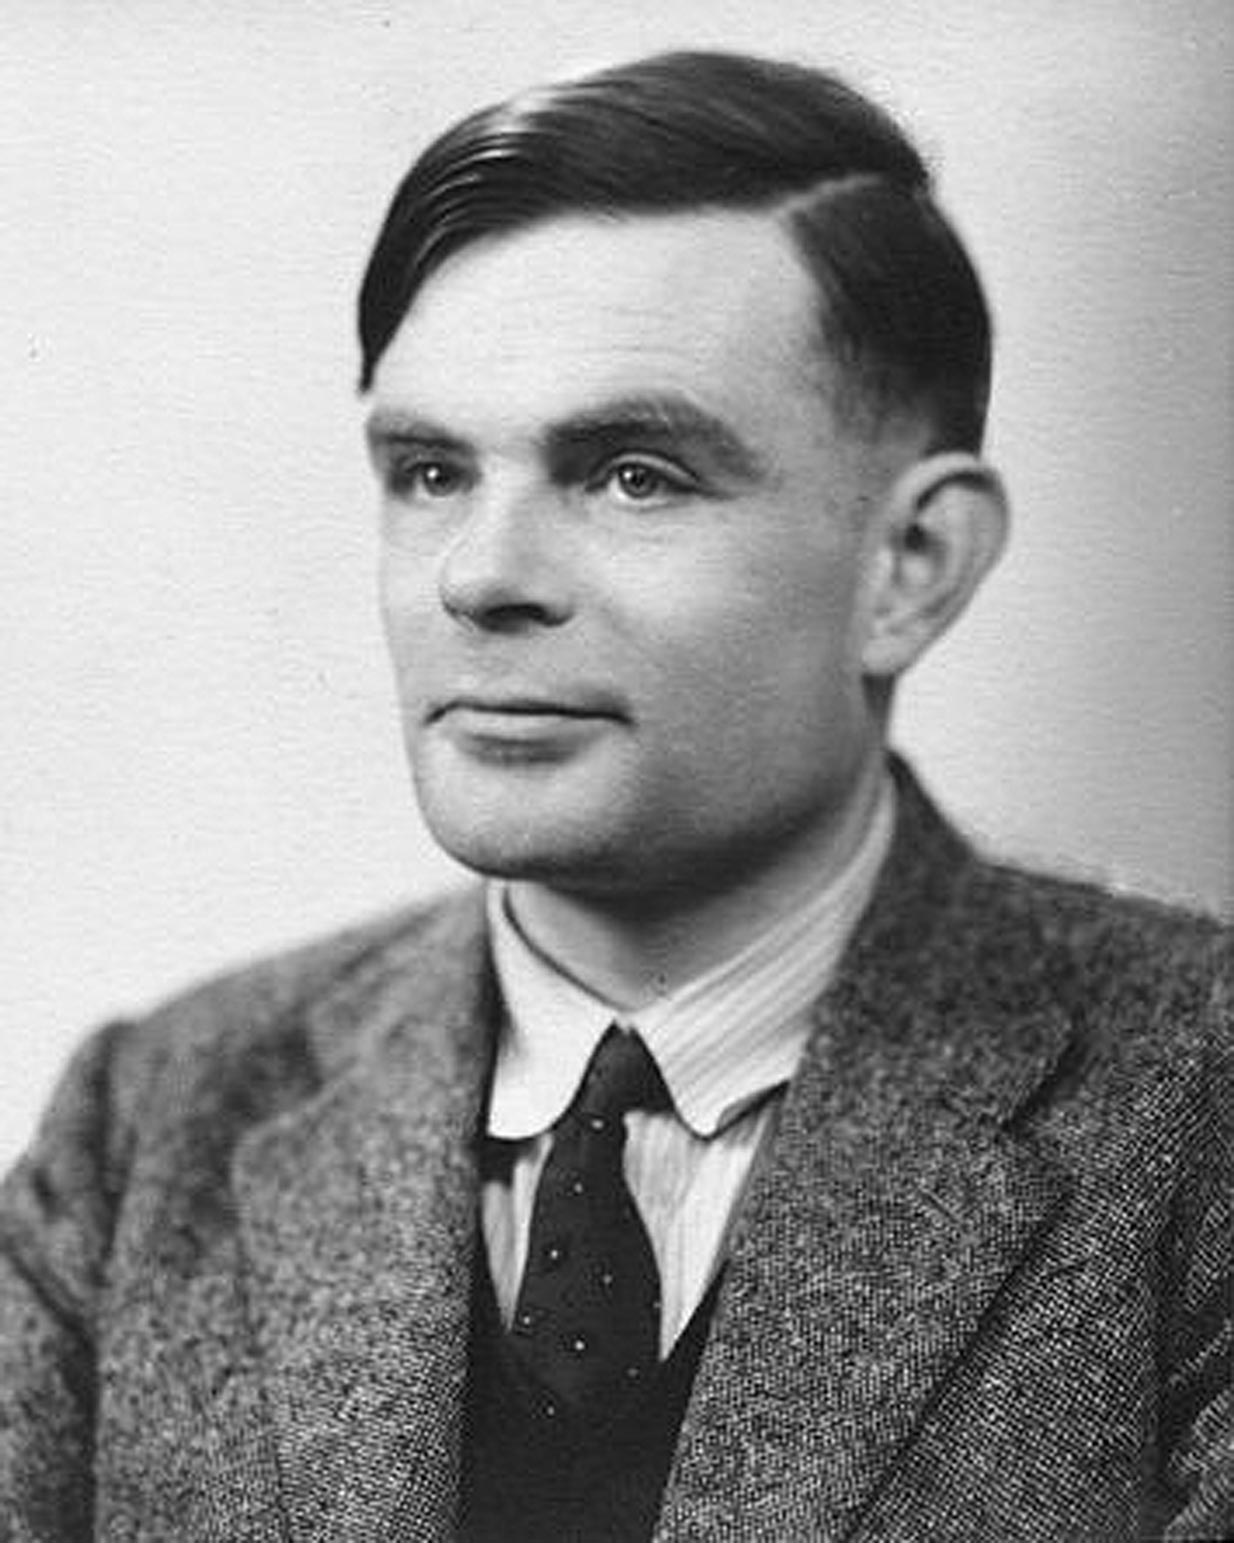 Alan Turing, Another #DDay Engineering Hero